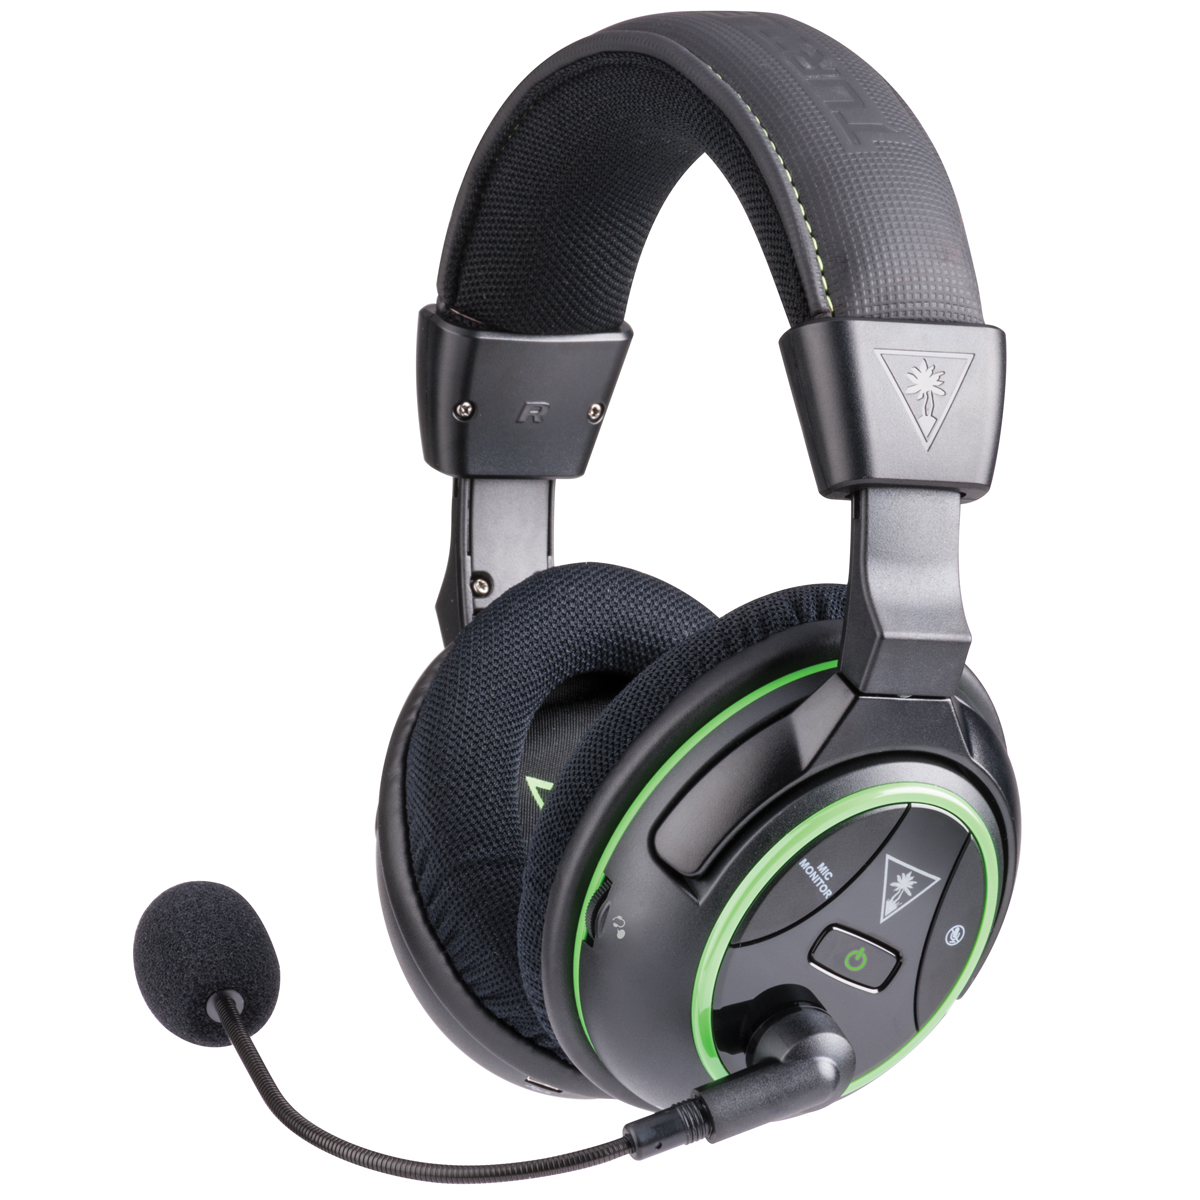 Turtle Beach Ear Force Stealth 500X Xbox One wireleless surround sound DTS Headphone:X review side view